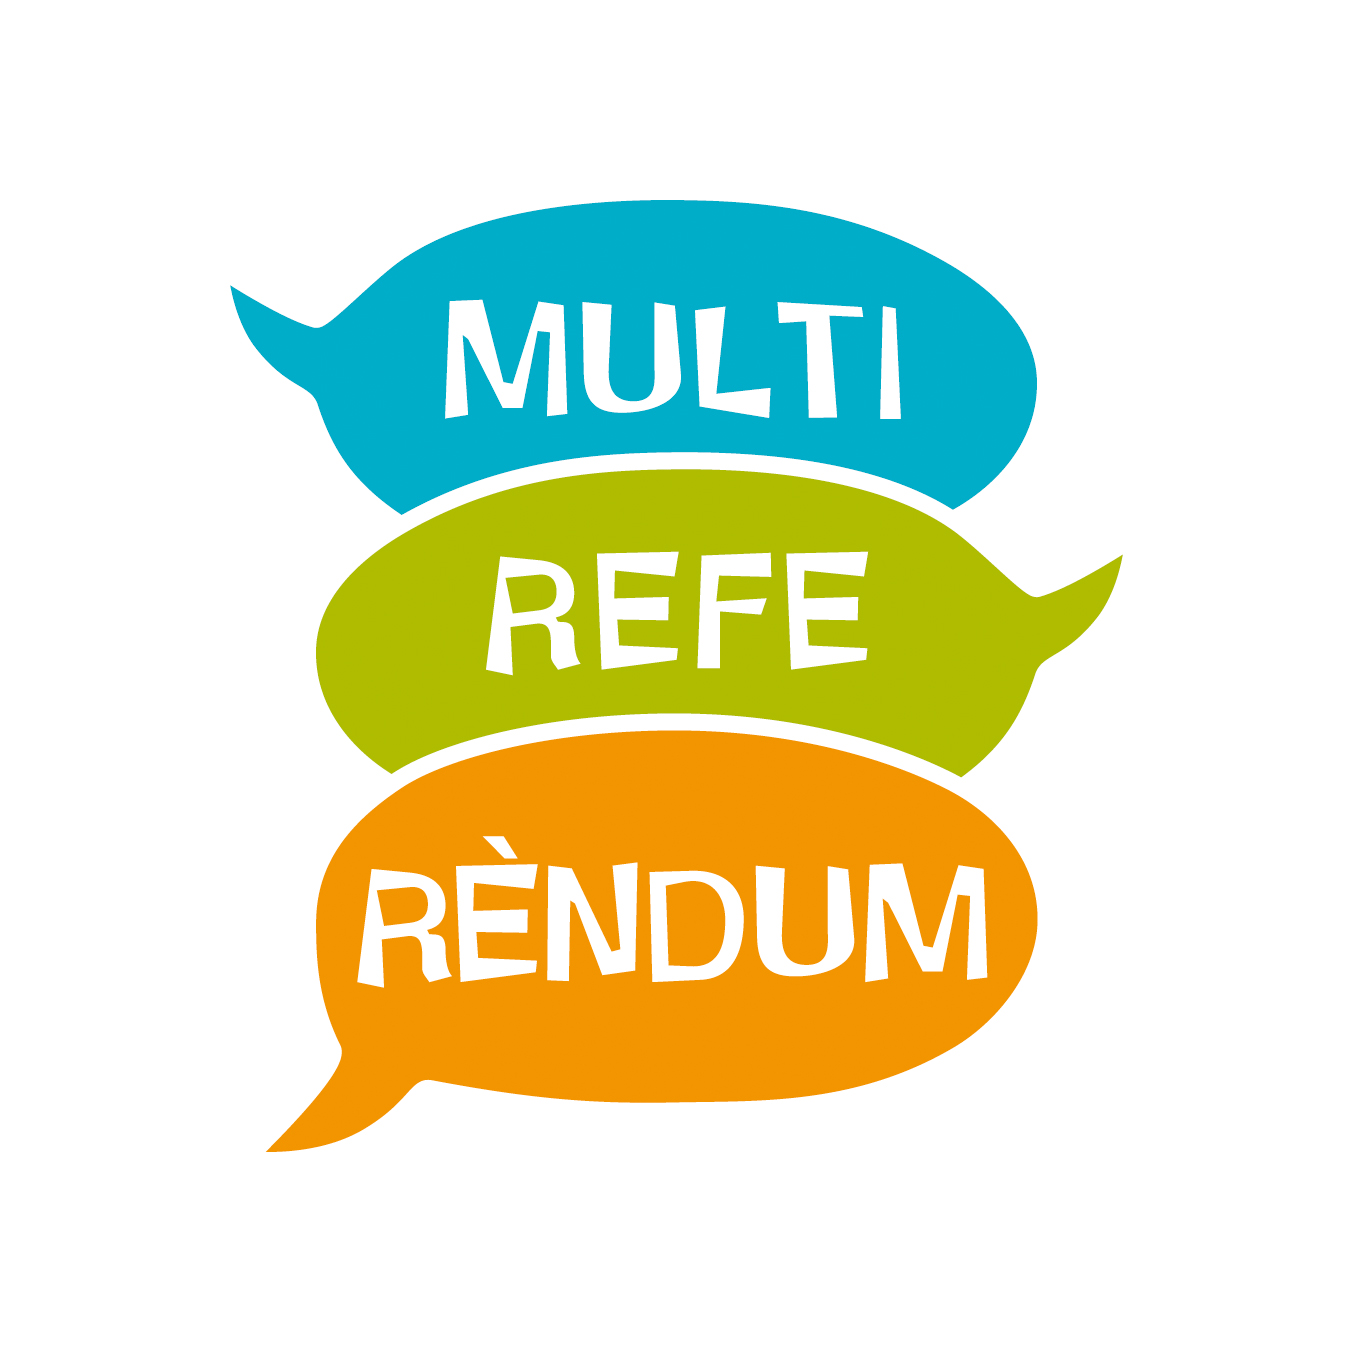 https://i1.wp.com/www.multireferendum.cat/wp-content/uploads/2014/03/LOGO_RGB.jpg